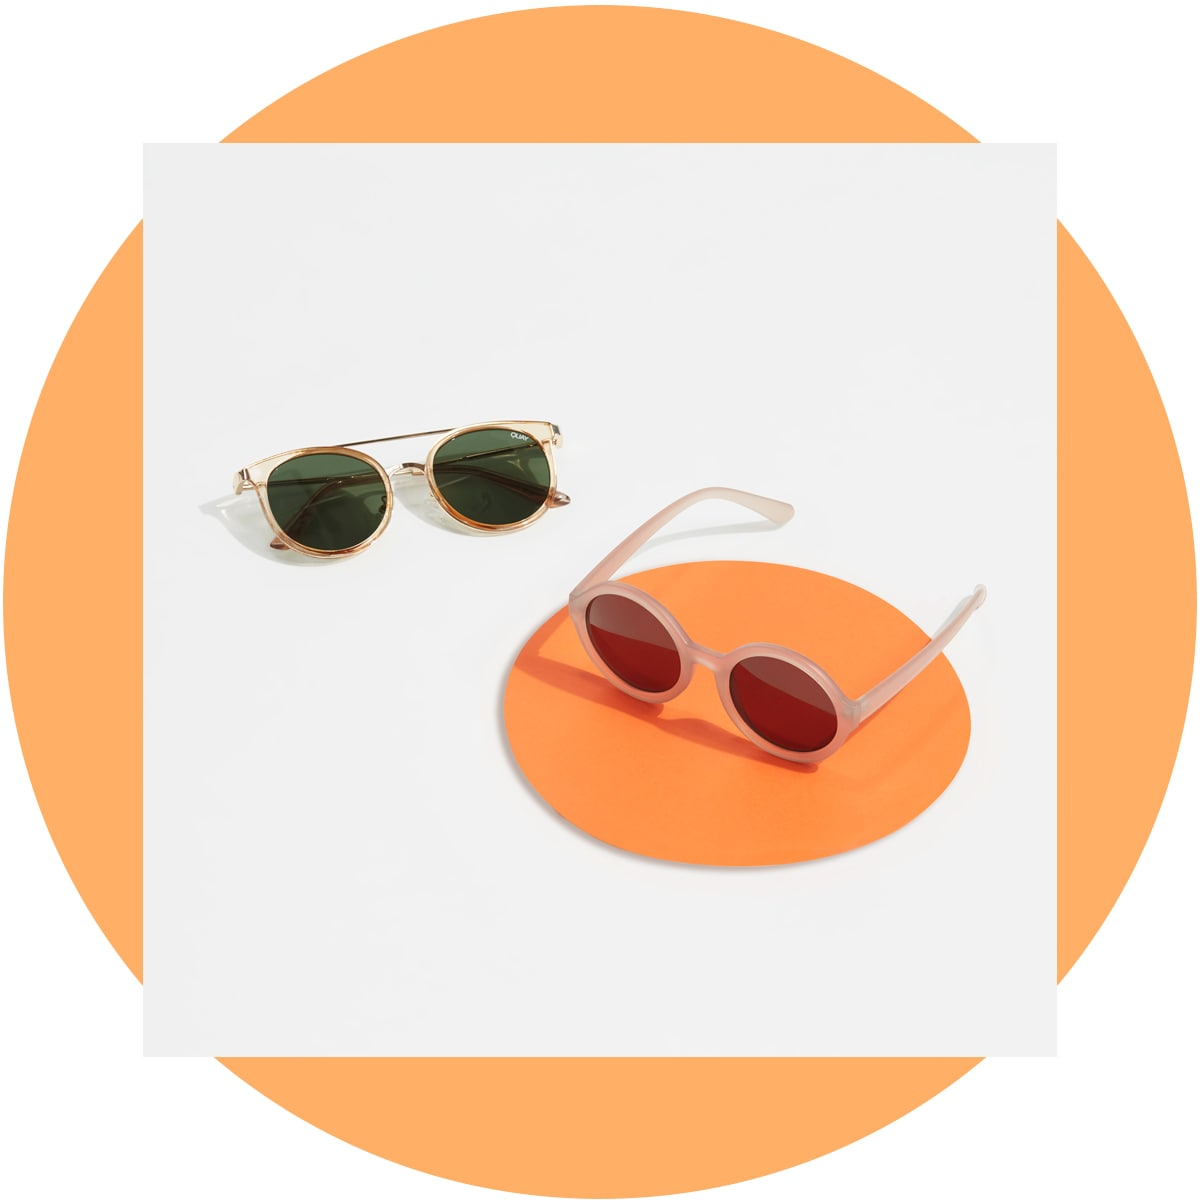 Round frame sunglasses for women